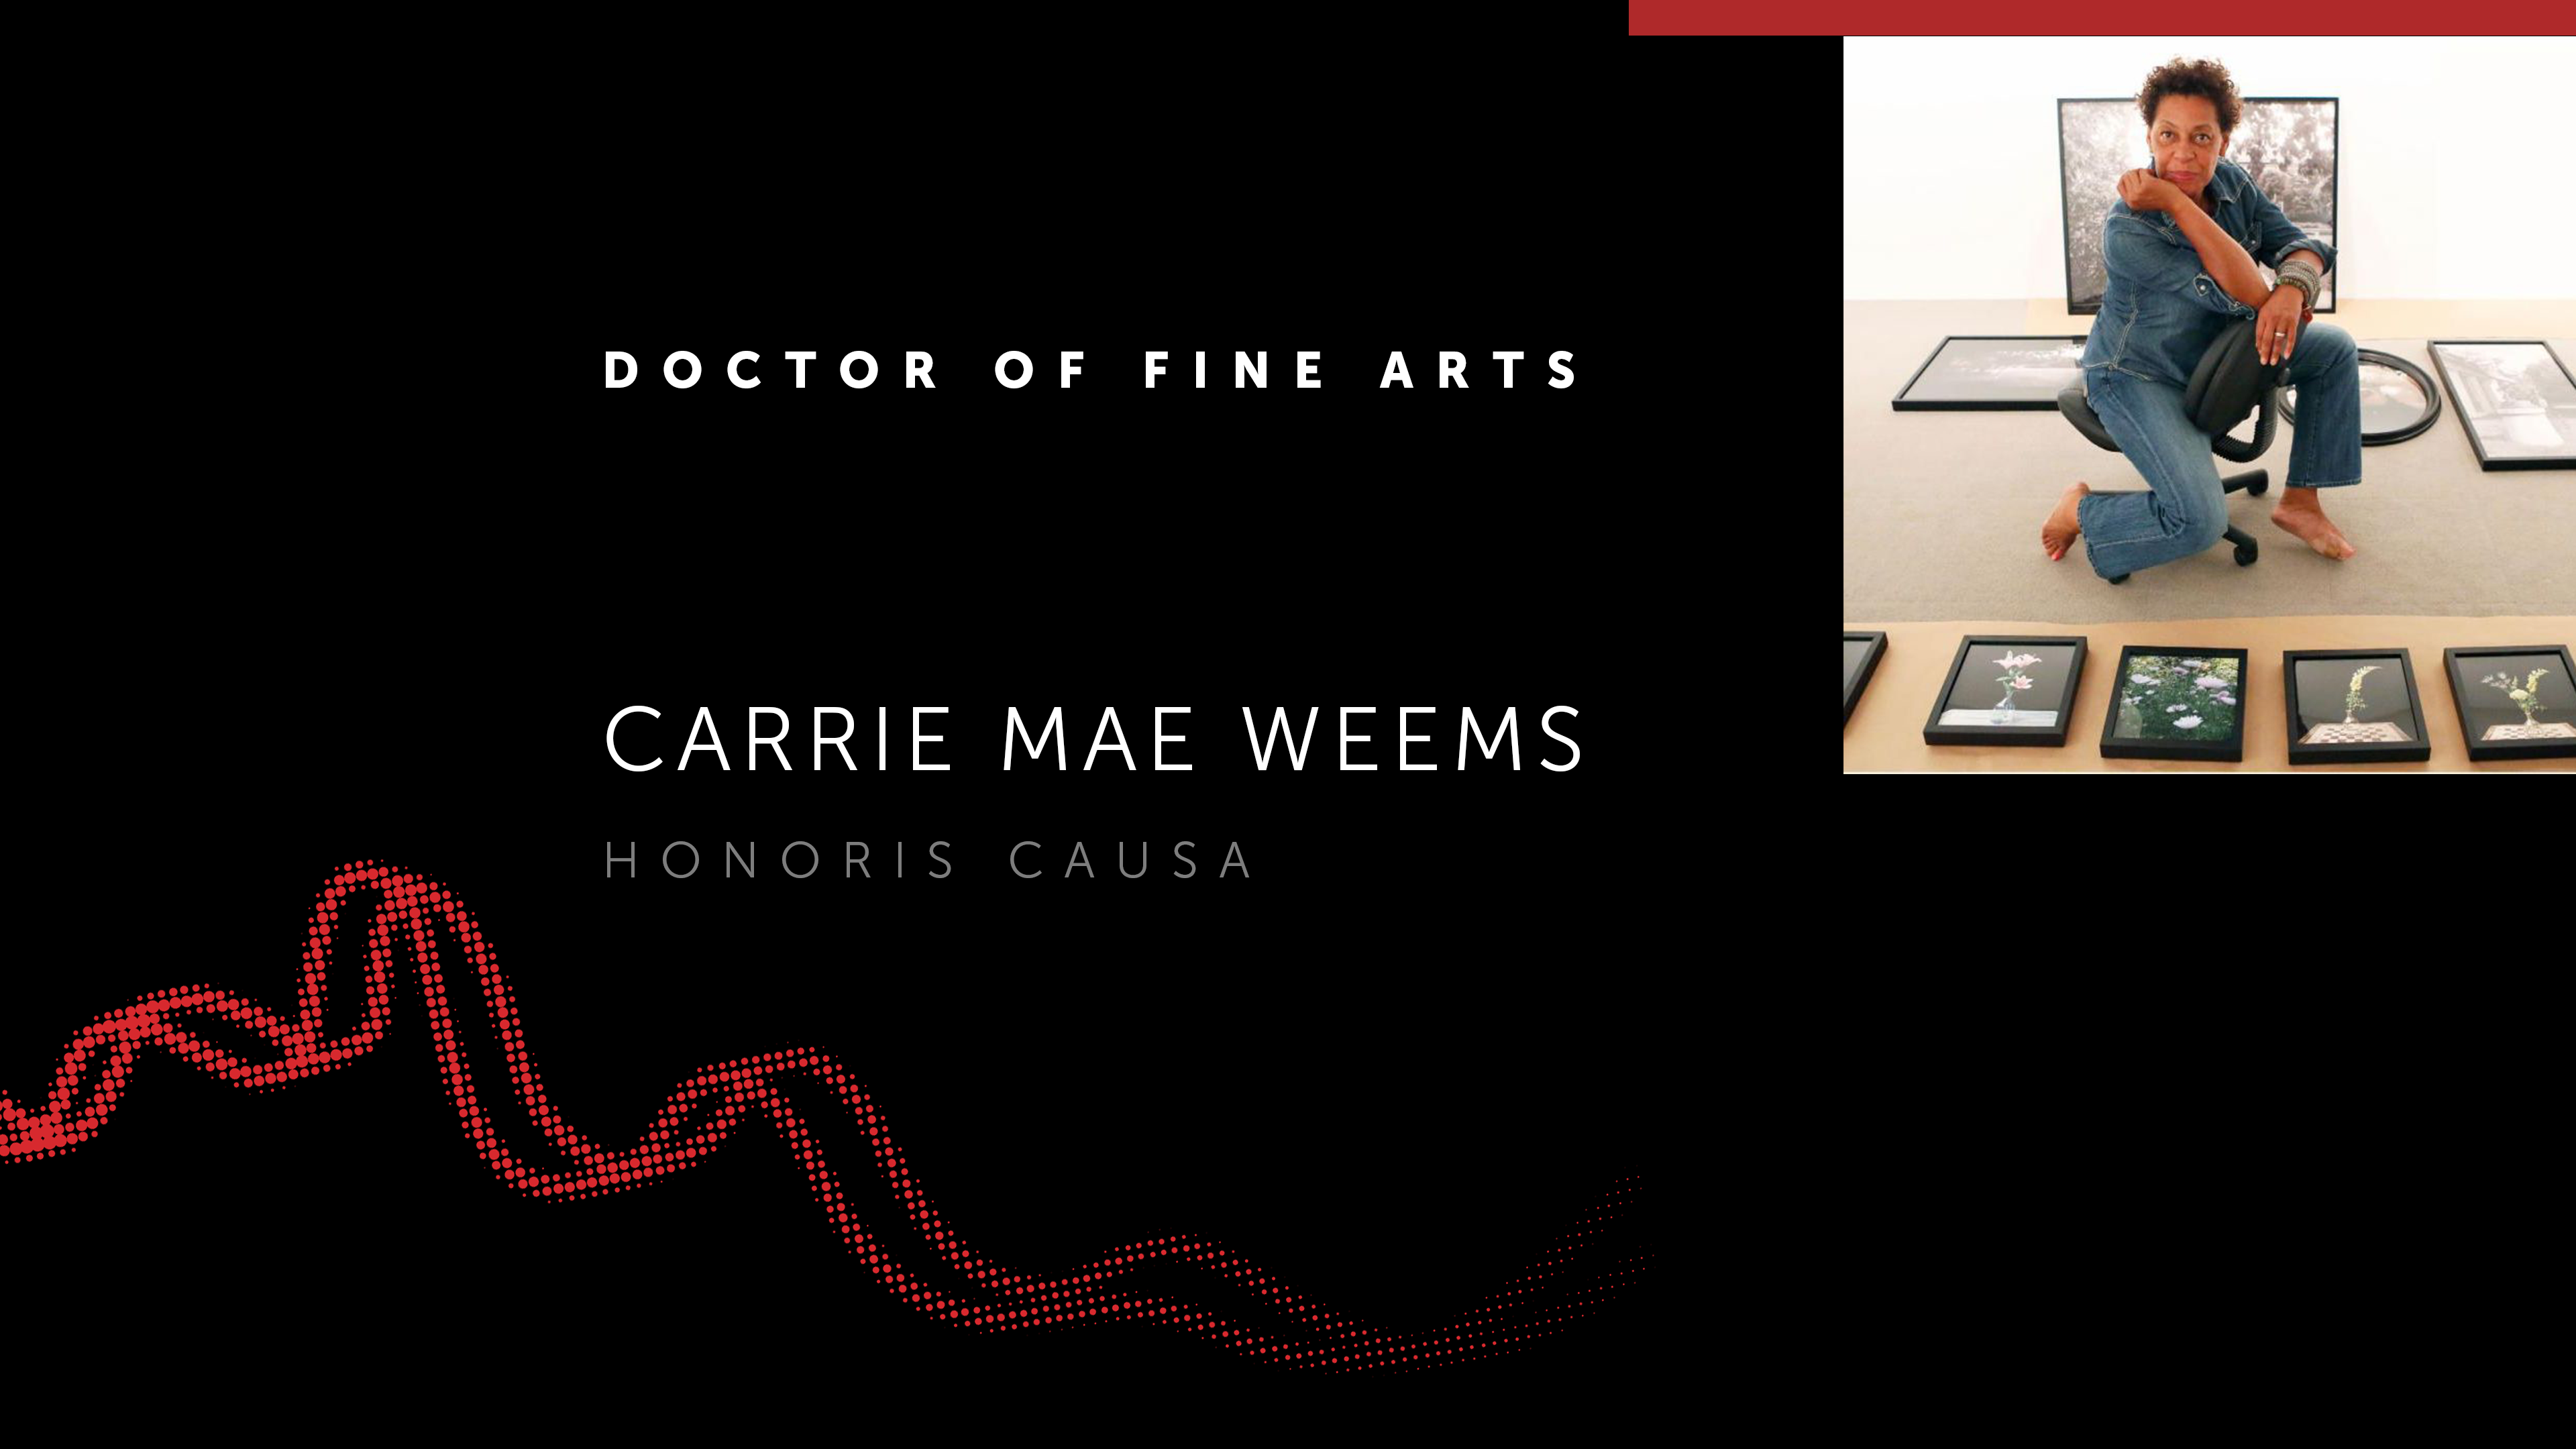 A black background and the text Doctor of Fine Arts Carrie Mae Weems